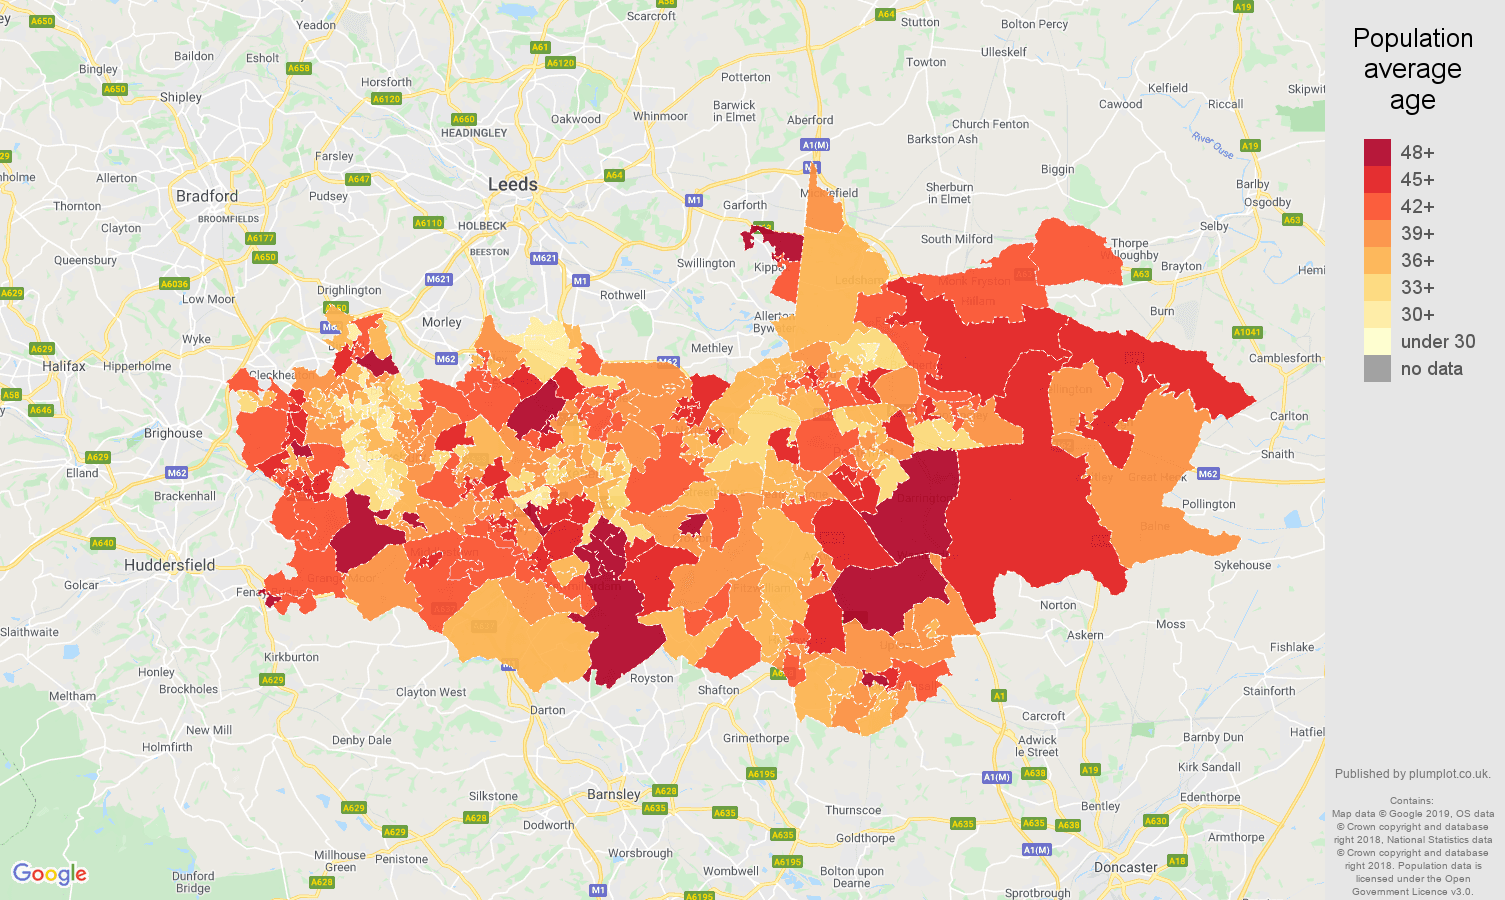 Wakefield population average age map